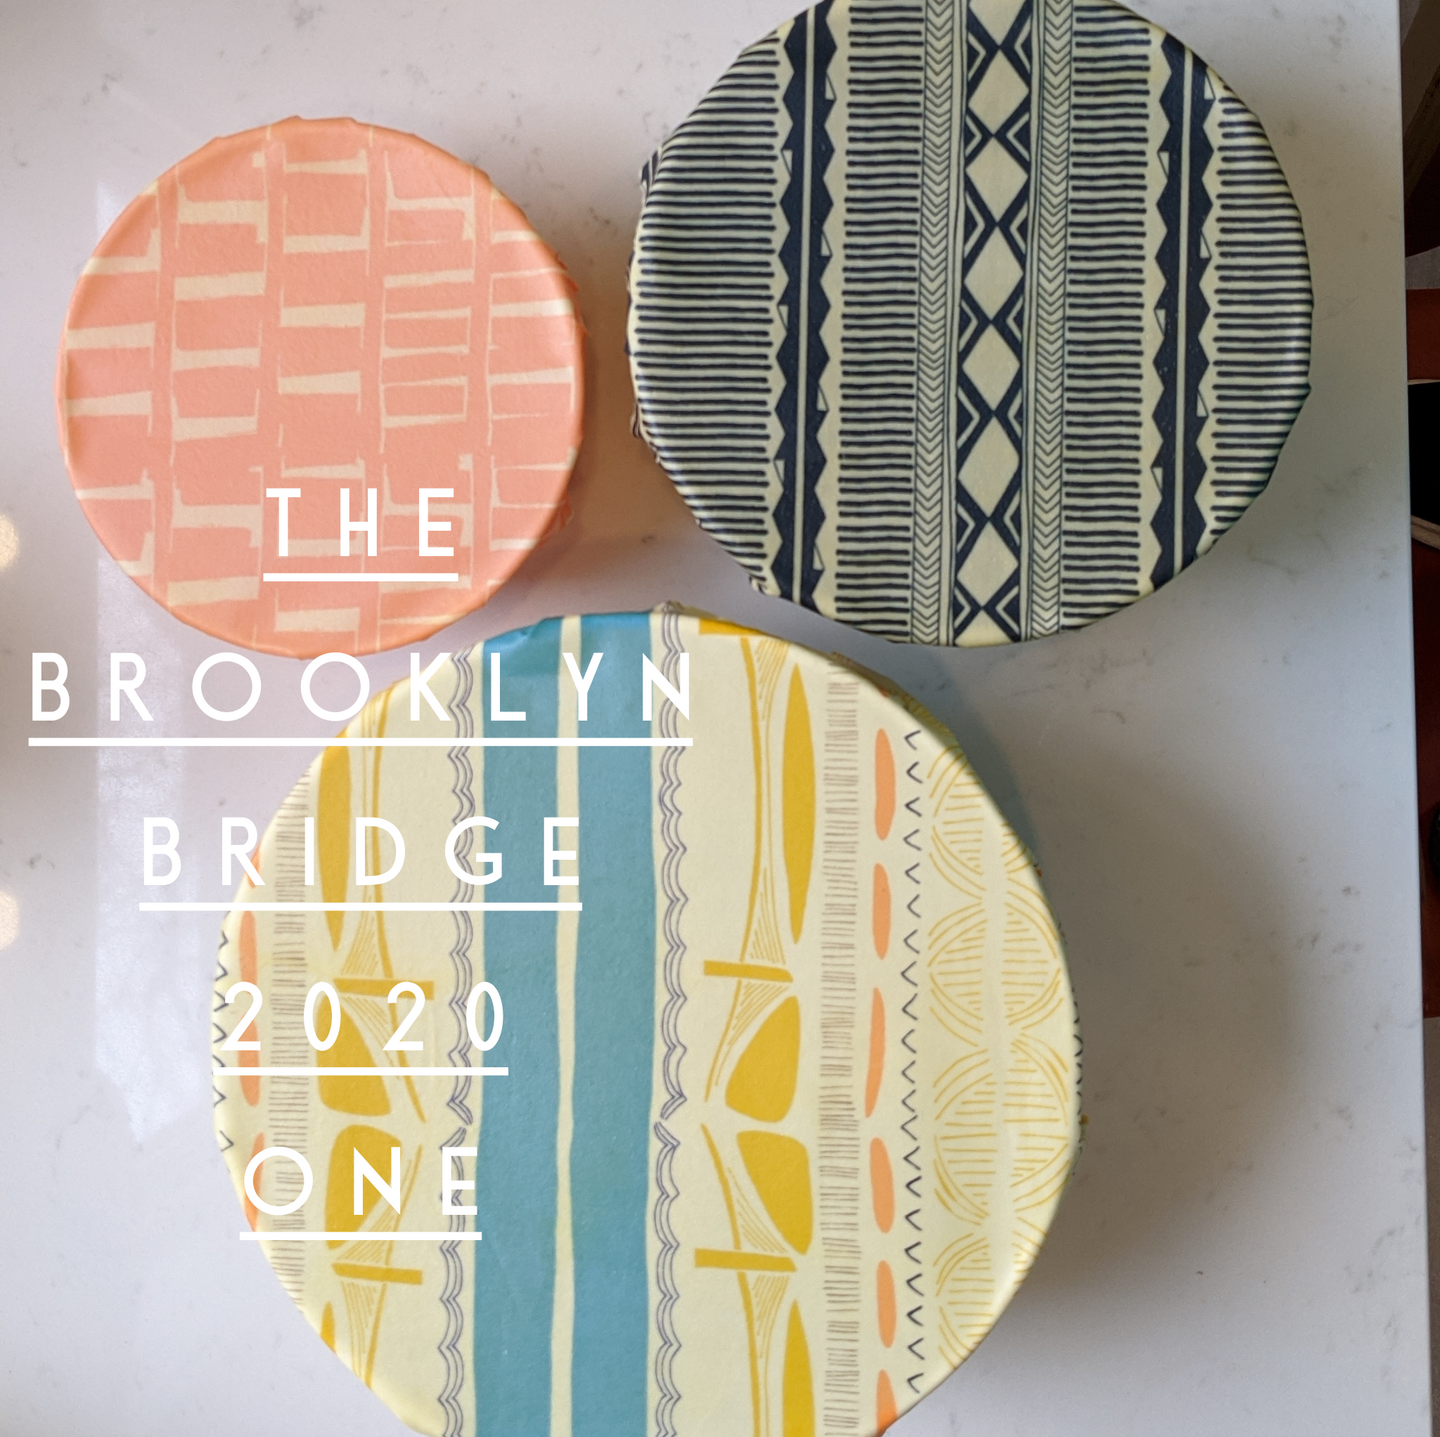 The Brooklyn Bridge 2020 One